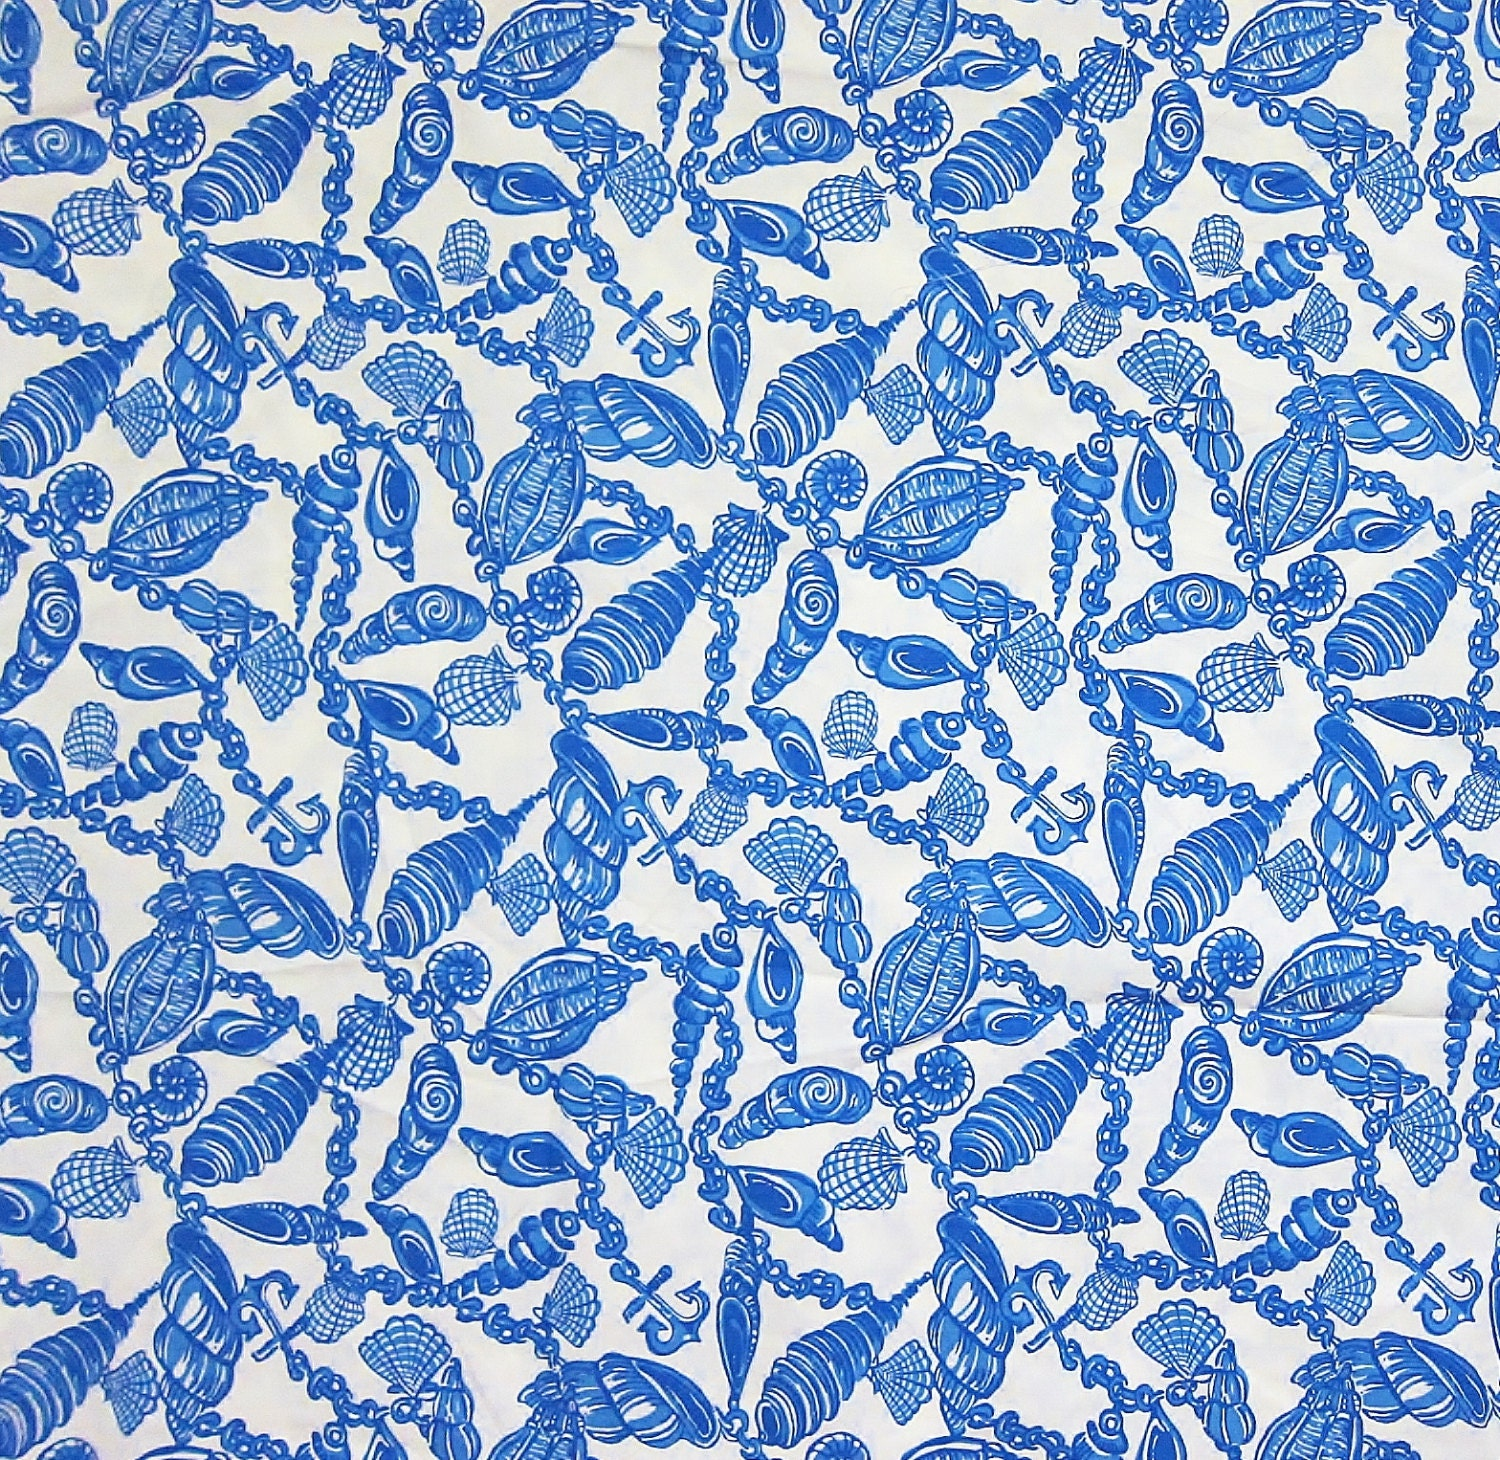 Lilly Pulitzer Fabric 18 X 18 Inches Lilly Pulitzer Fabric Falling In Love A Little 18 X